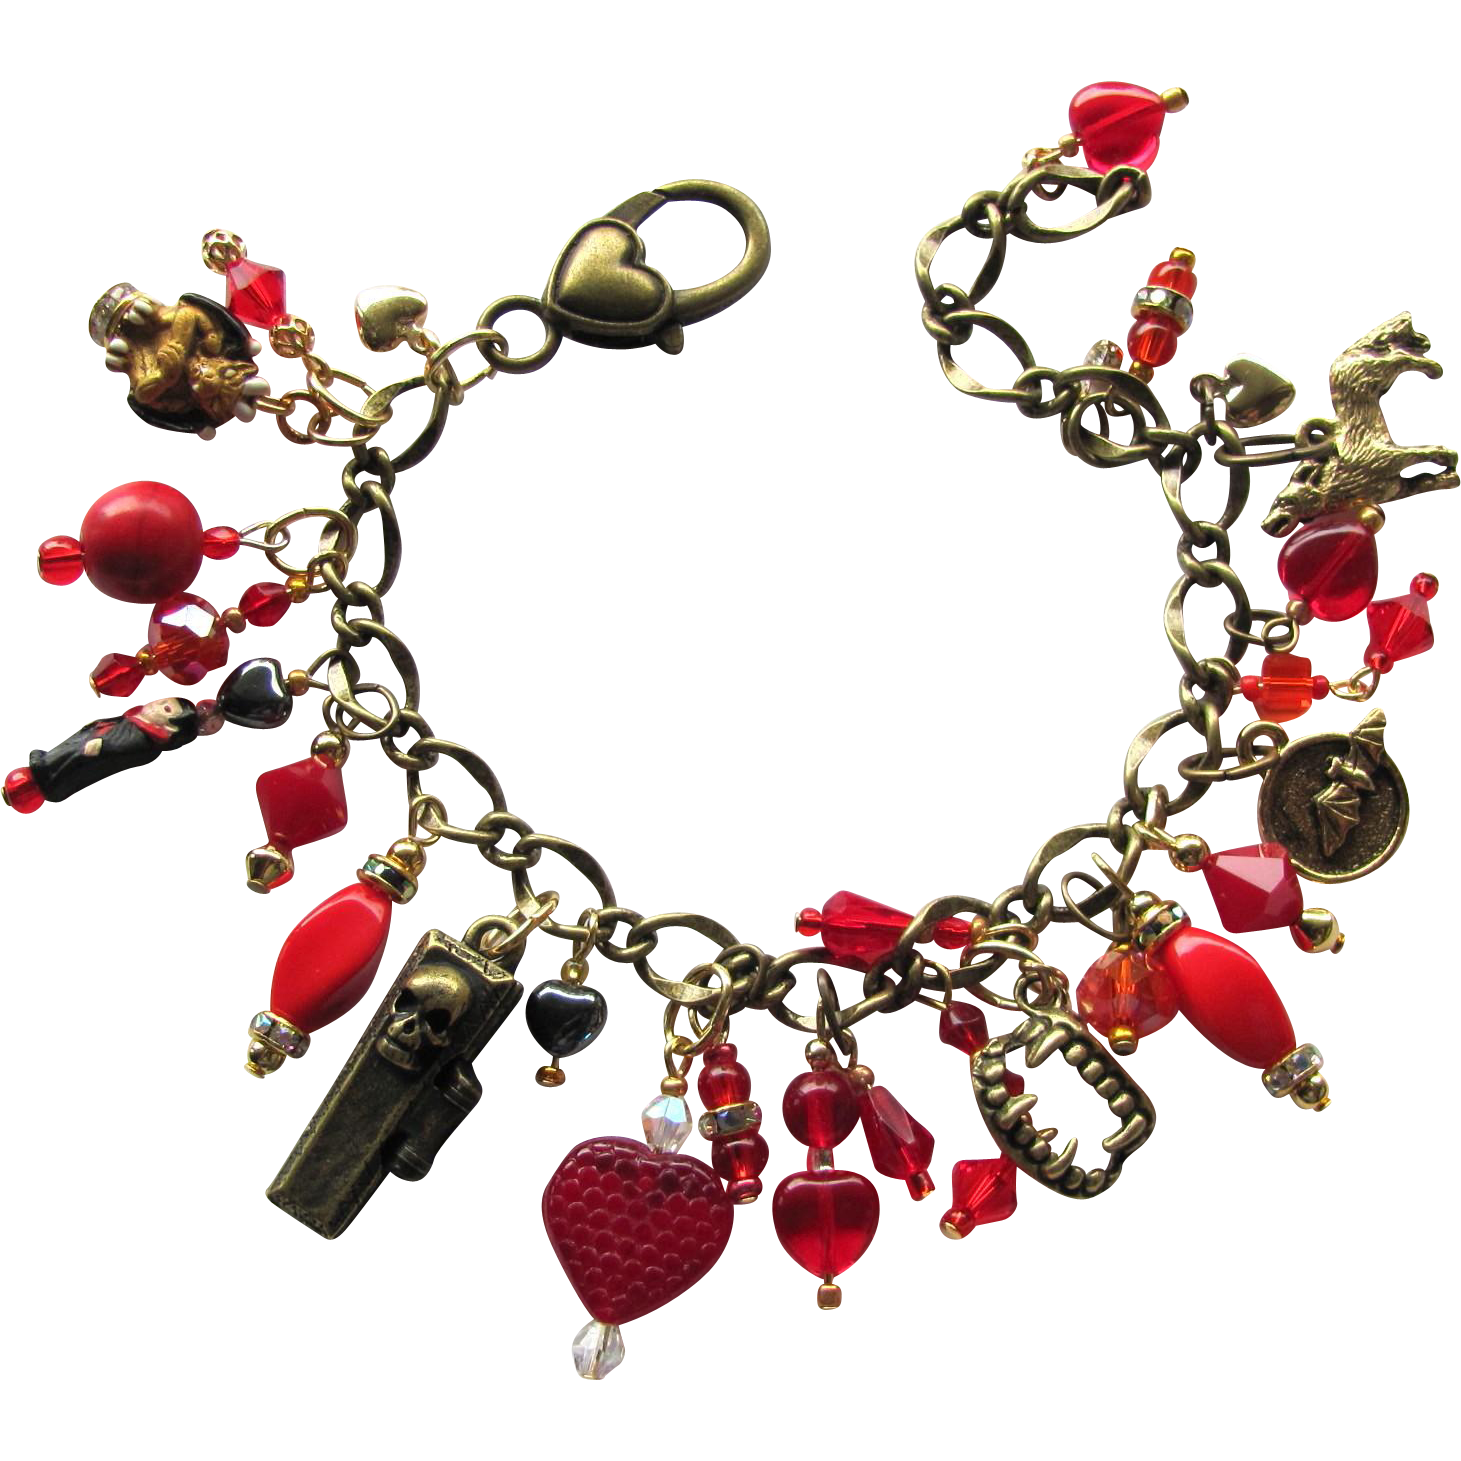 Vampire Charm Bracelet in Red and Gold Colors with Vampire Teeth – Swarovski Crystals – Earrings